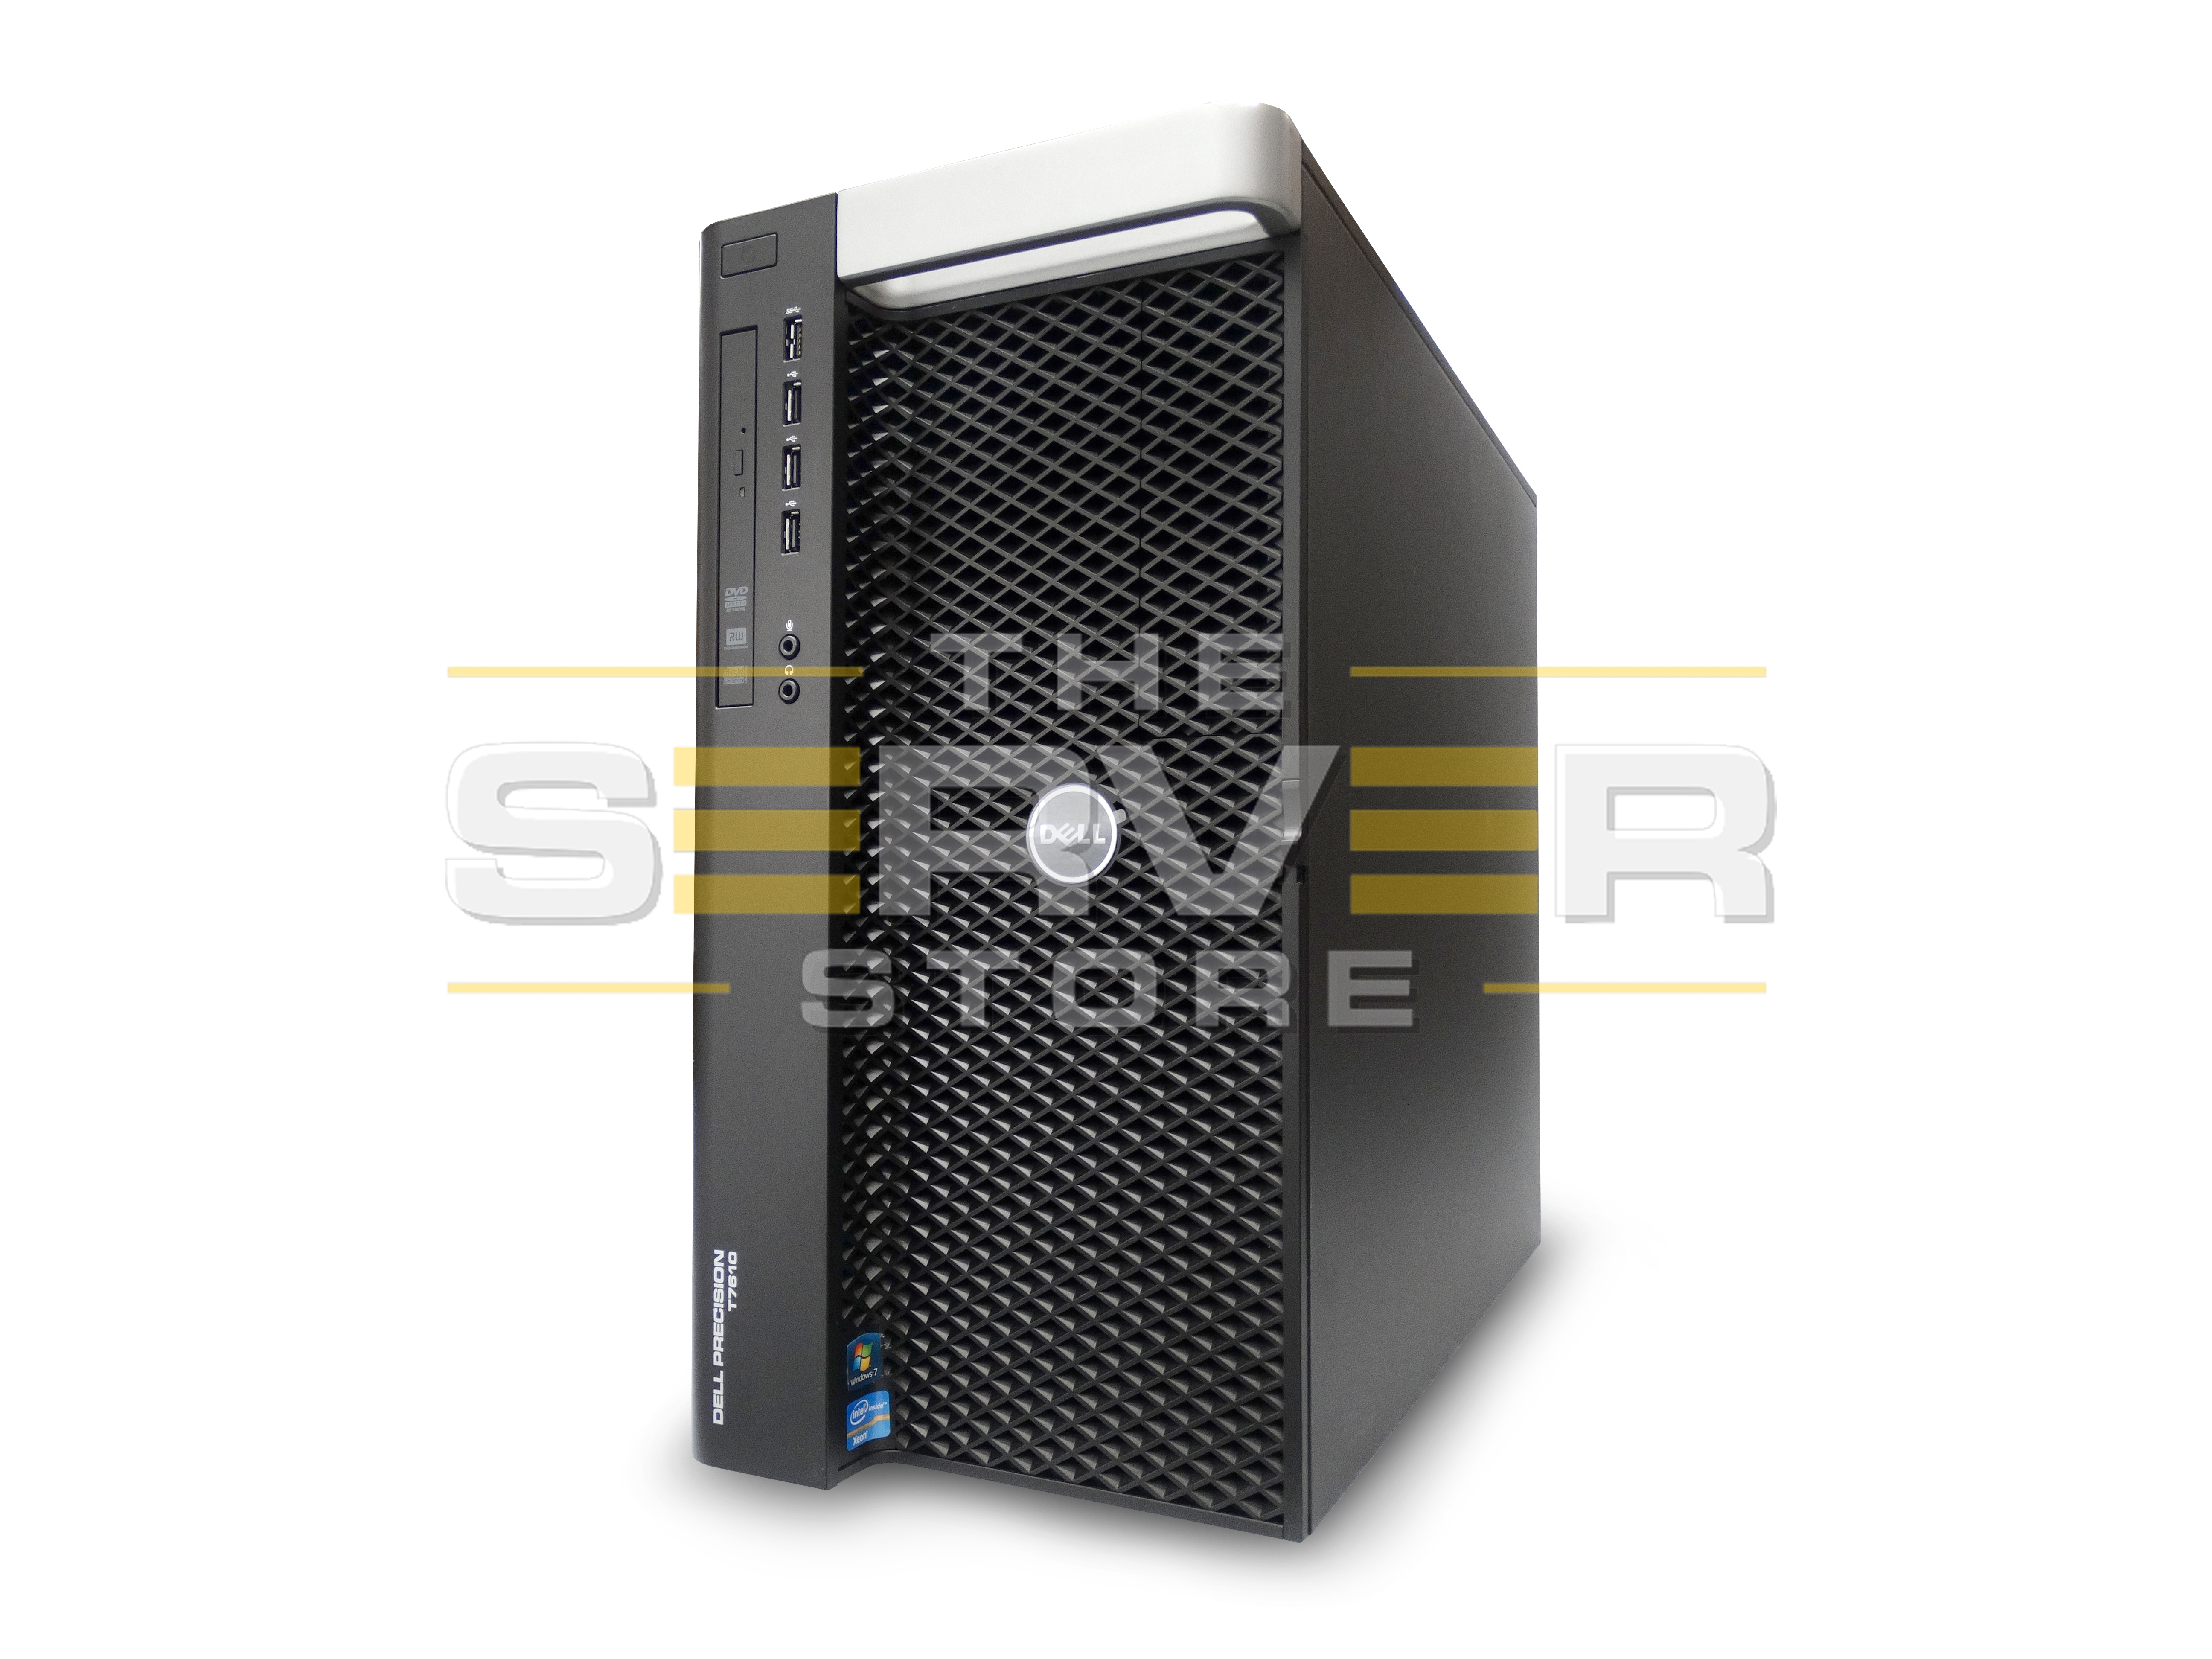 Dell Precision T7610 Workstation - 3D Animation Rendering Workstation